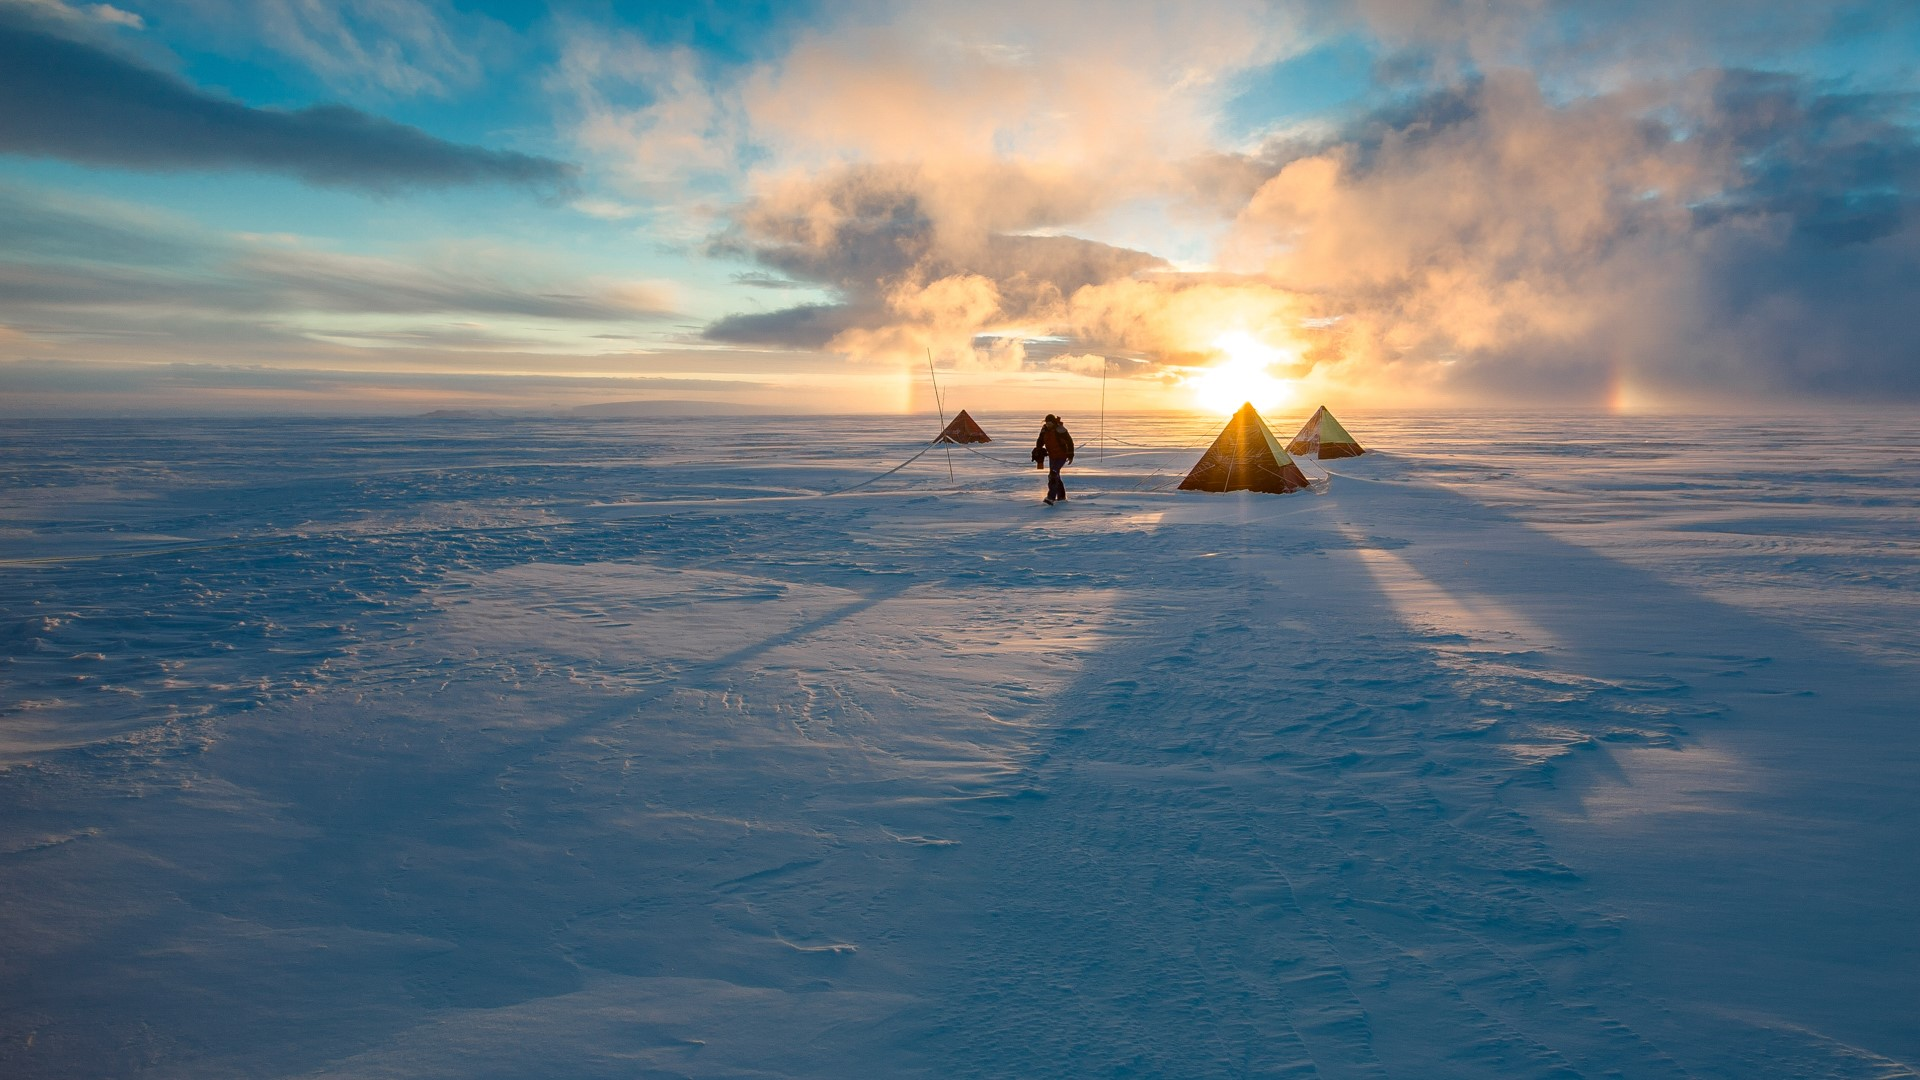 Field Camp In Antarctica Windows 10 Spotlight Images